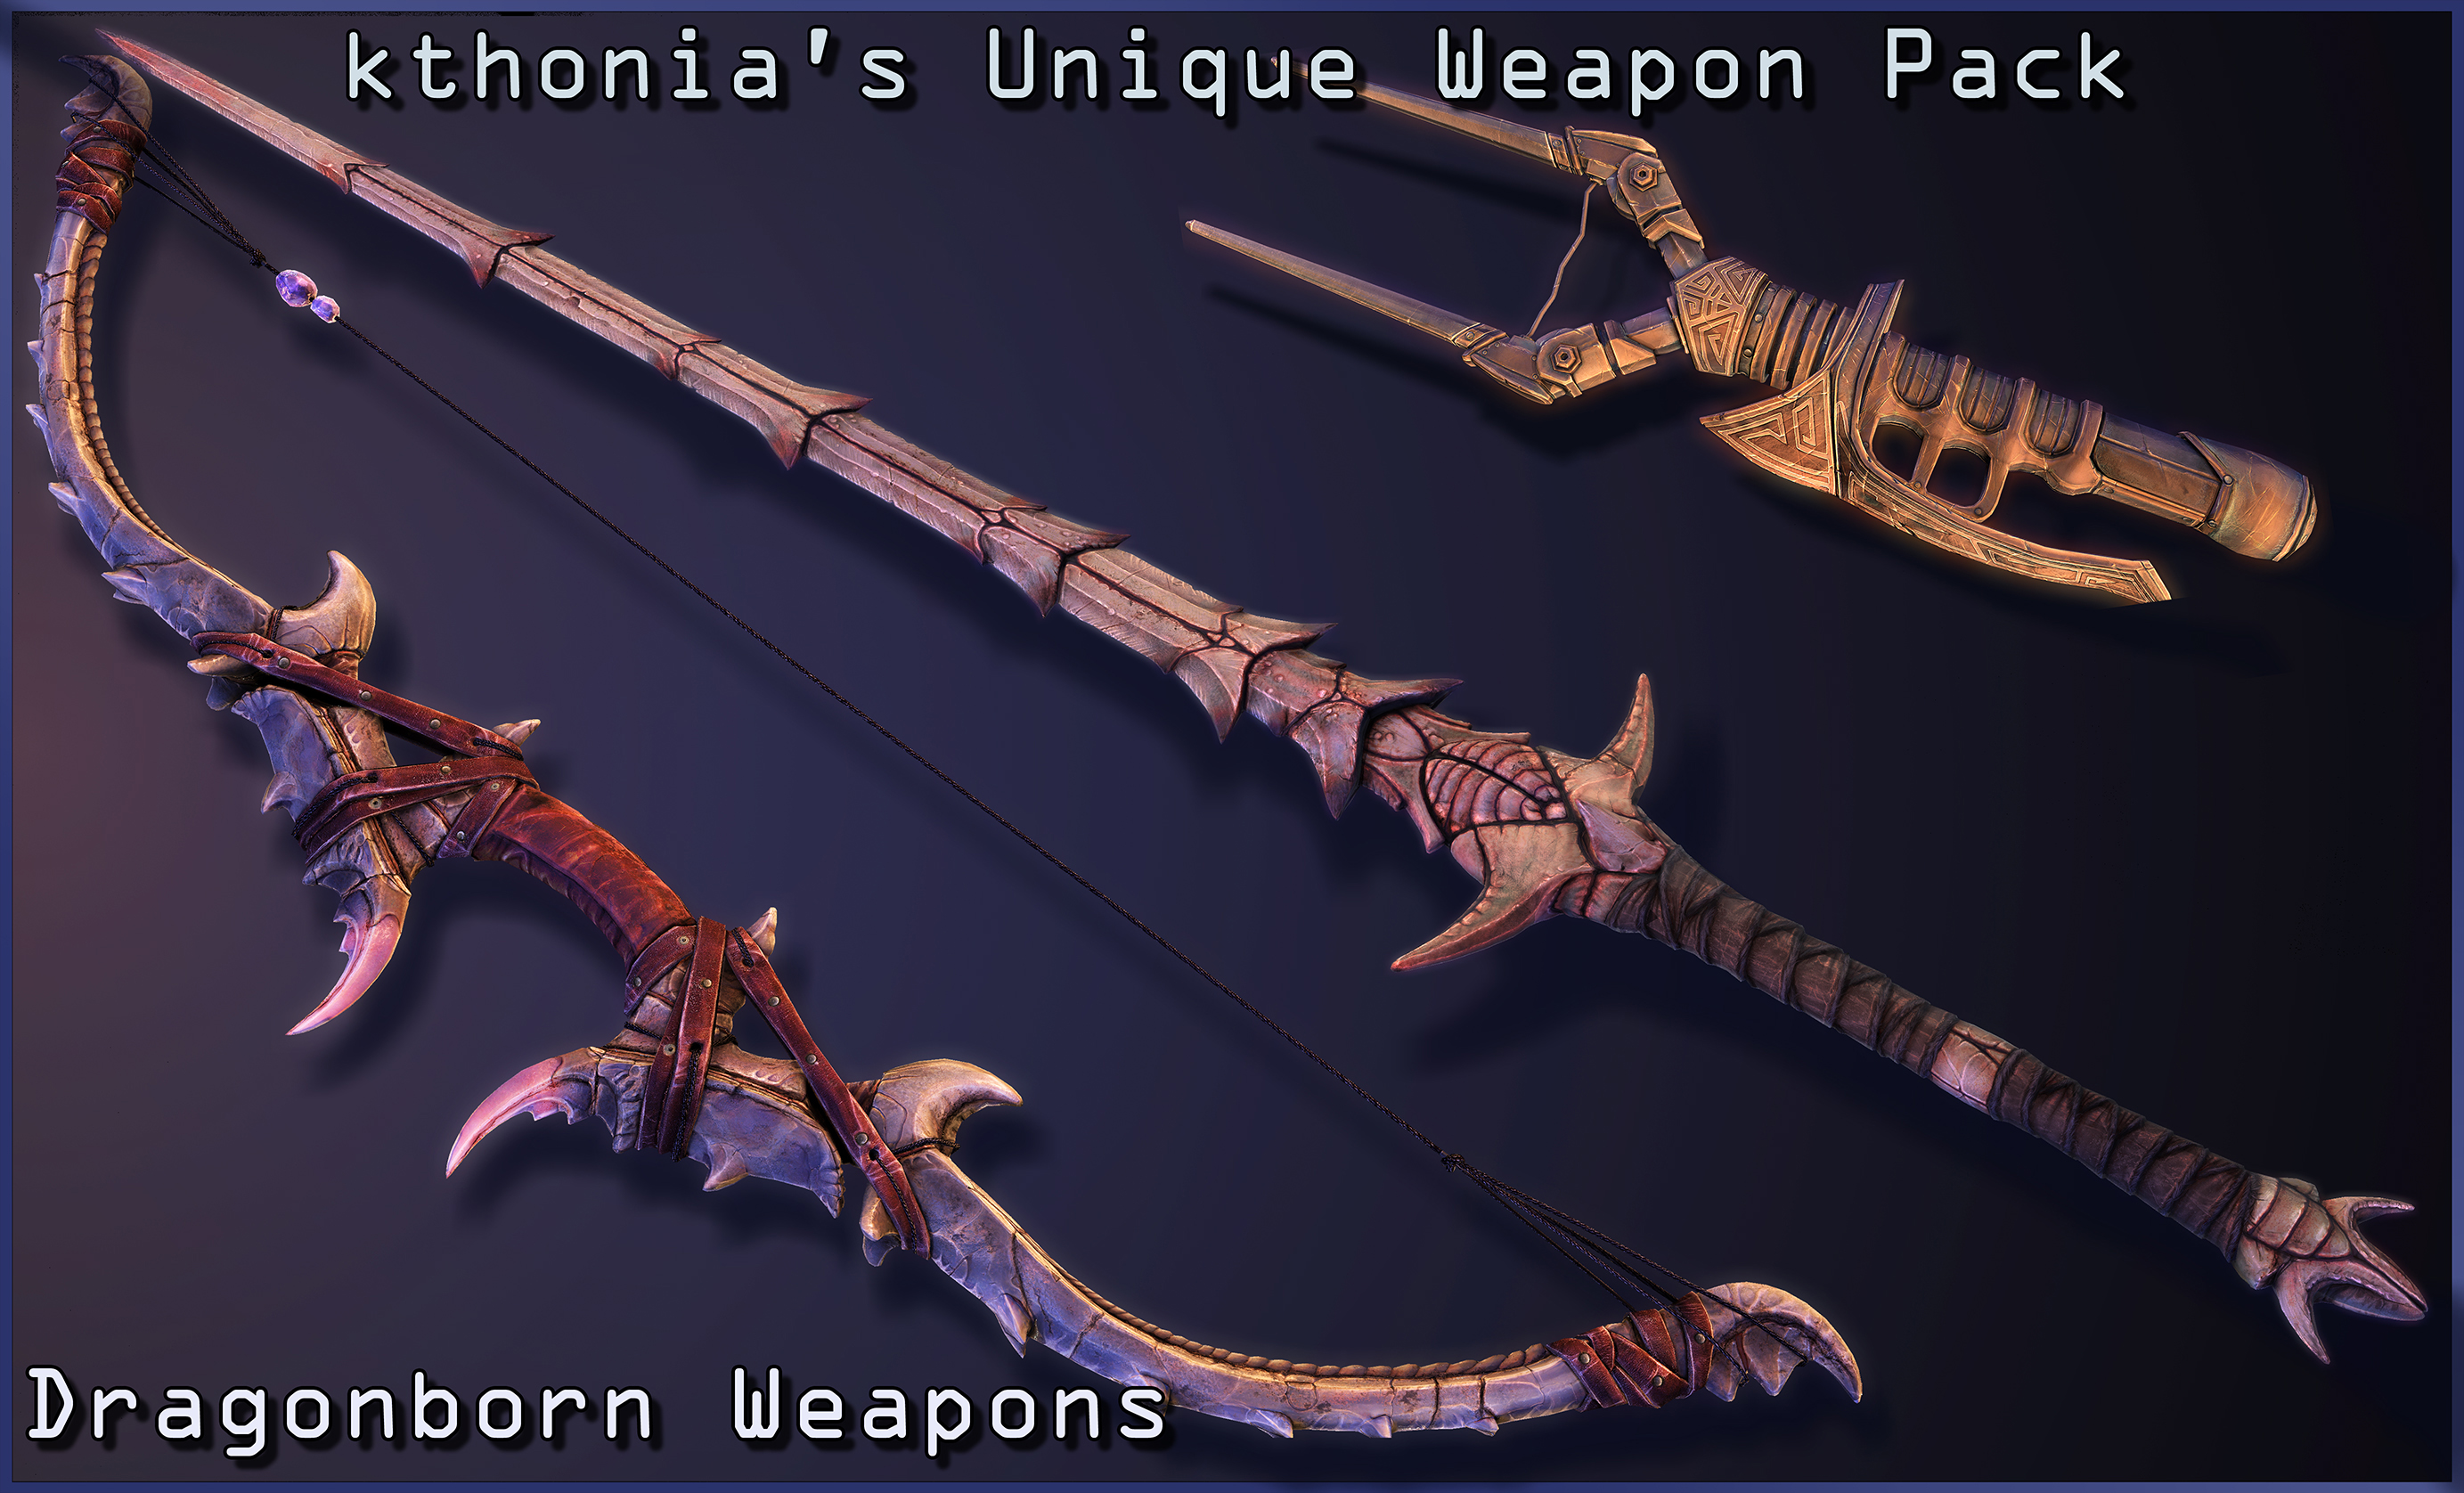 Kthonia's Unique Weapon Pack - Dragonborn Weapons